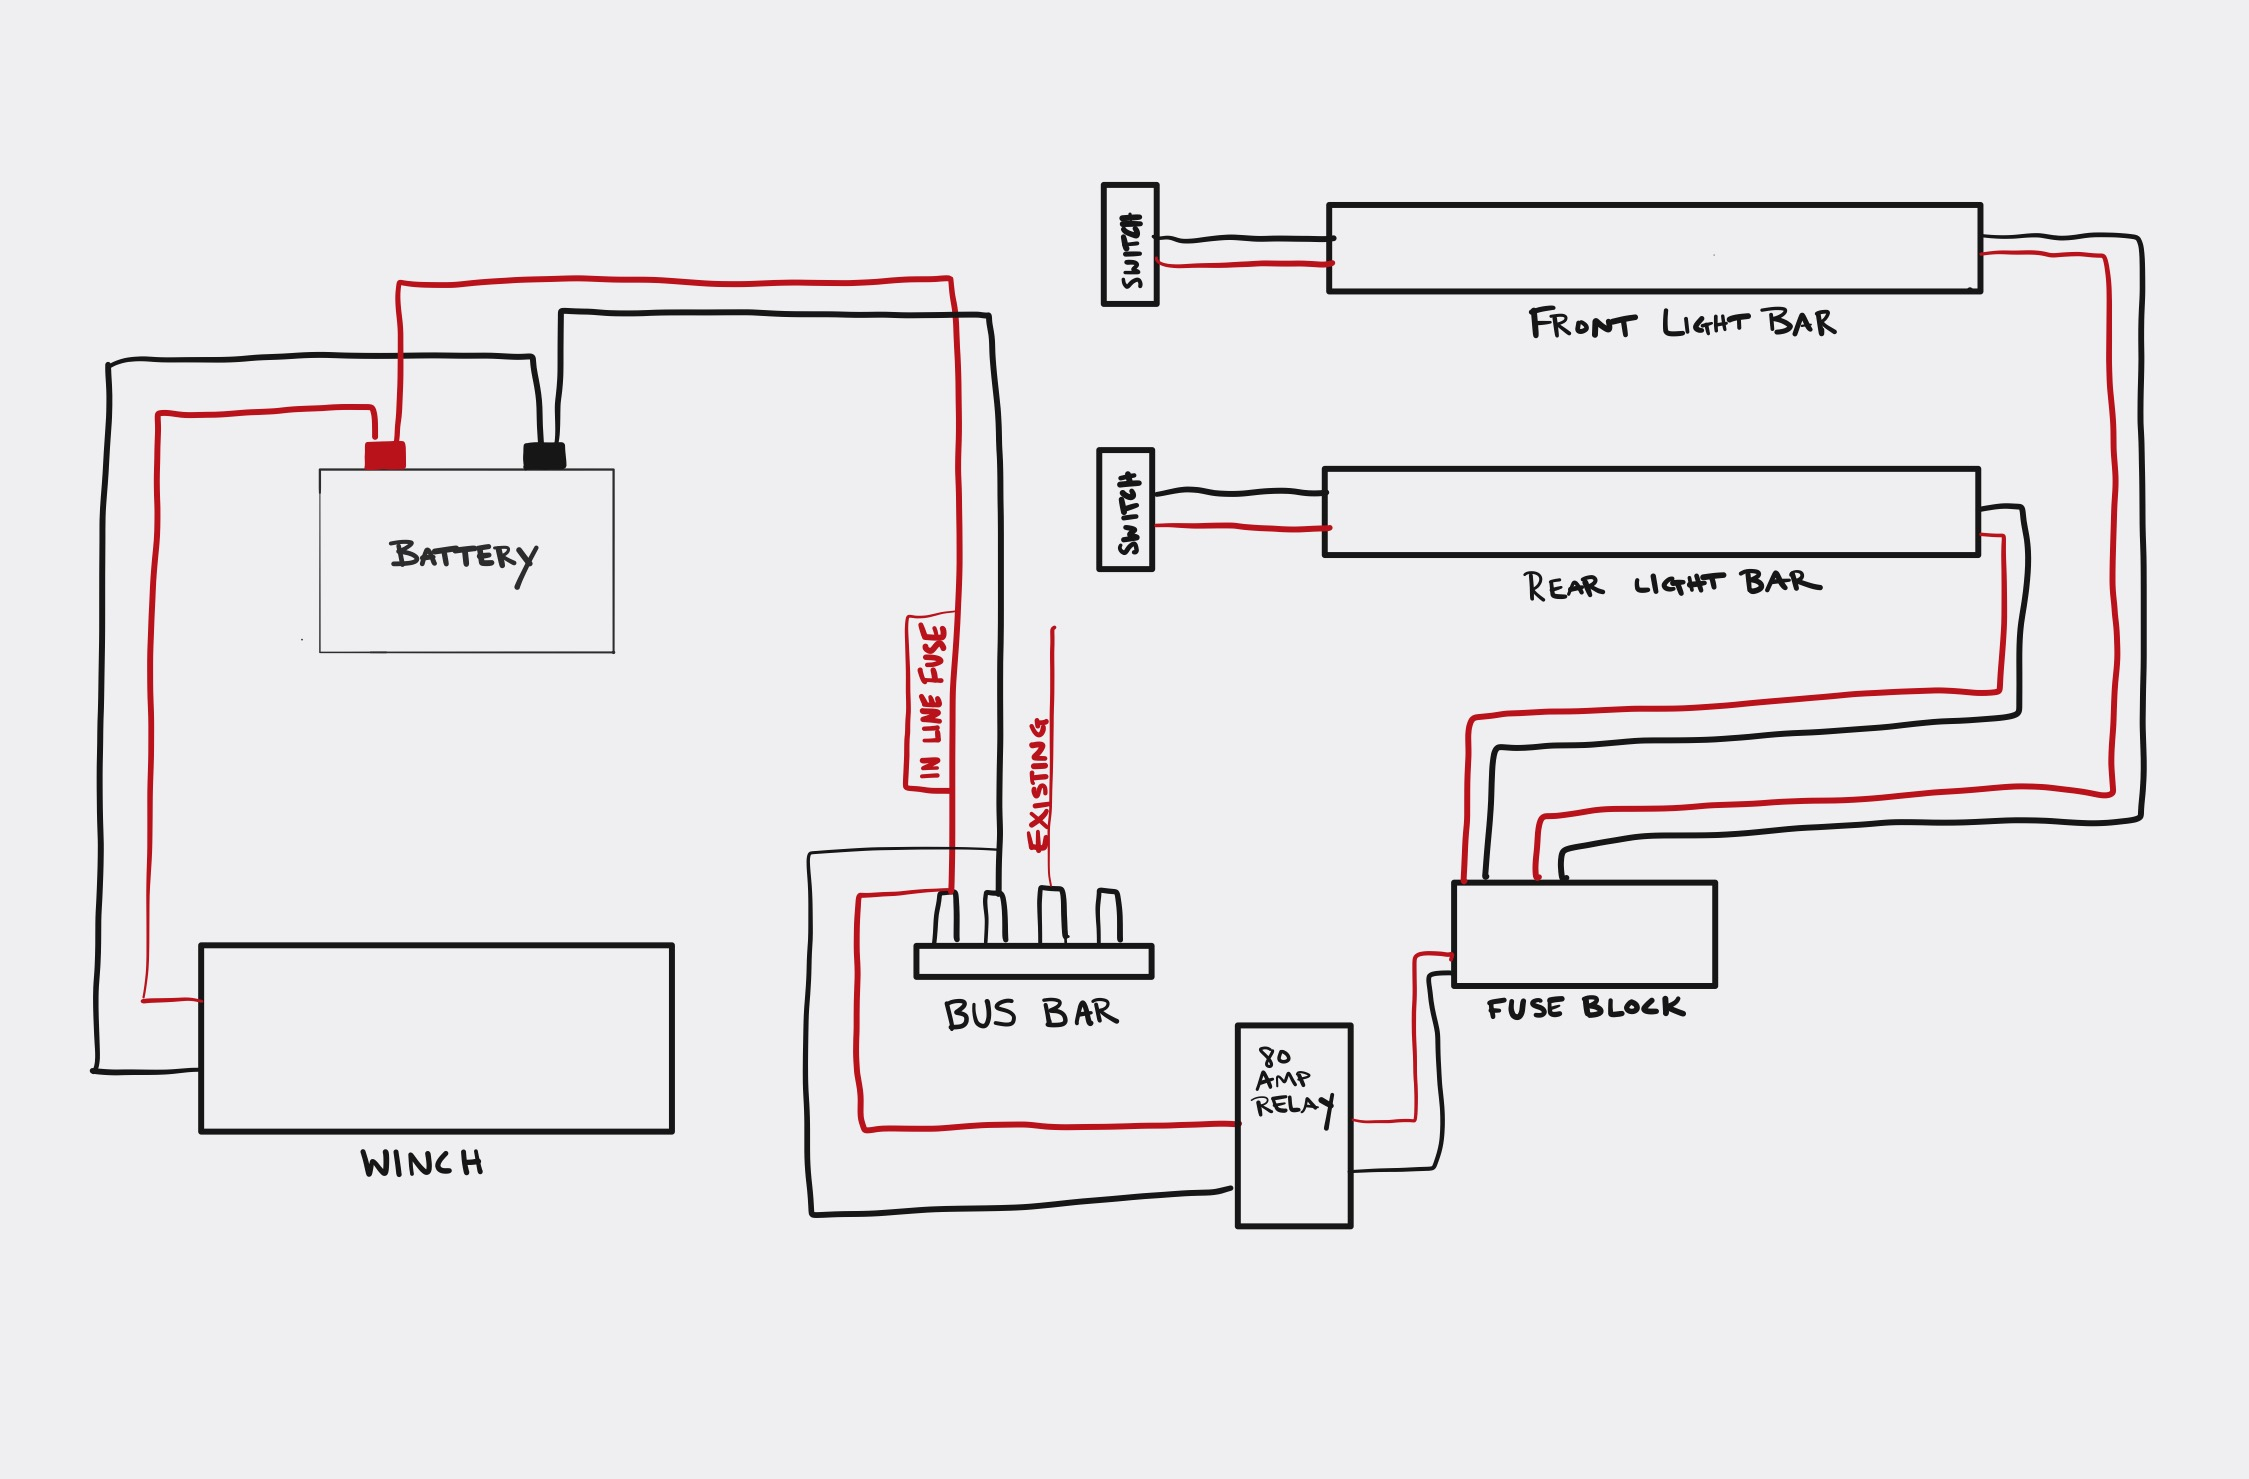 Wiring diagram. Please check this for me | PRC Polaris Ranger ClubPRC Polaris Ranger Club